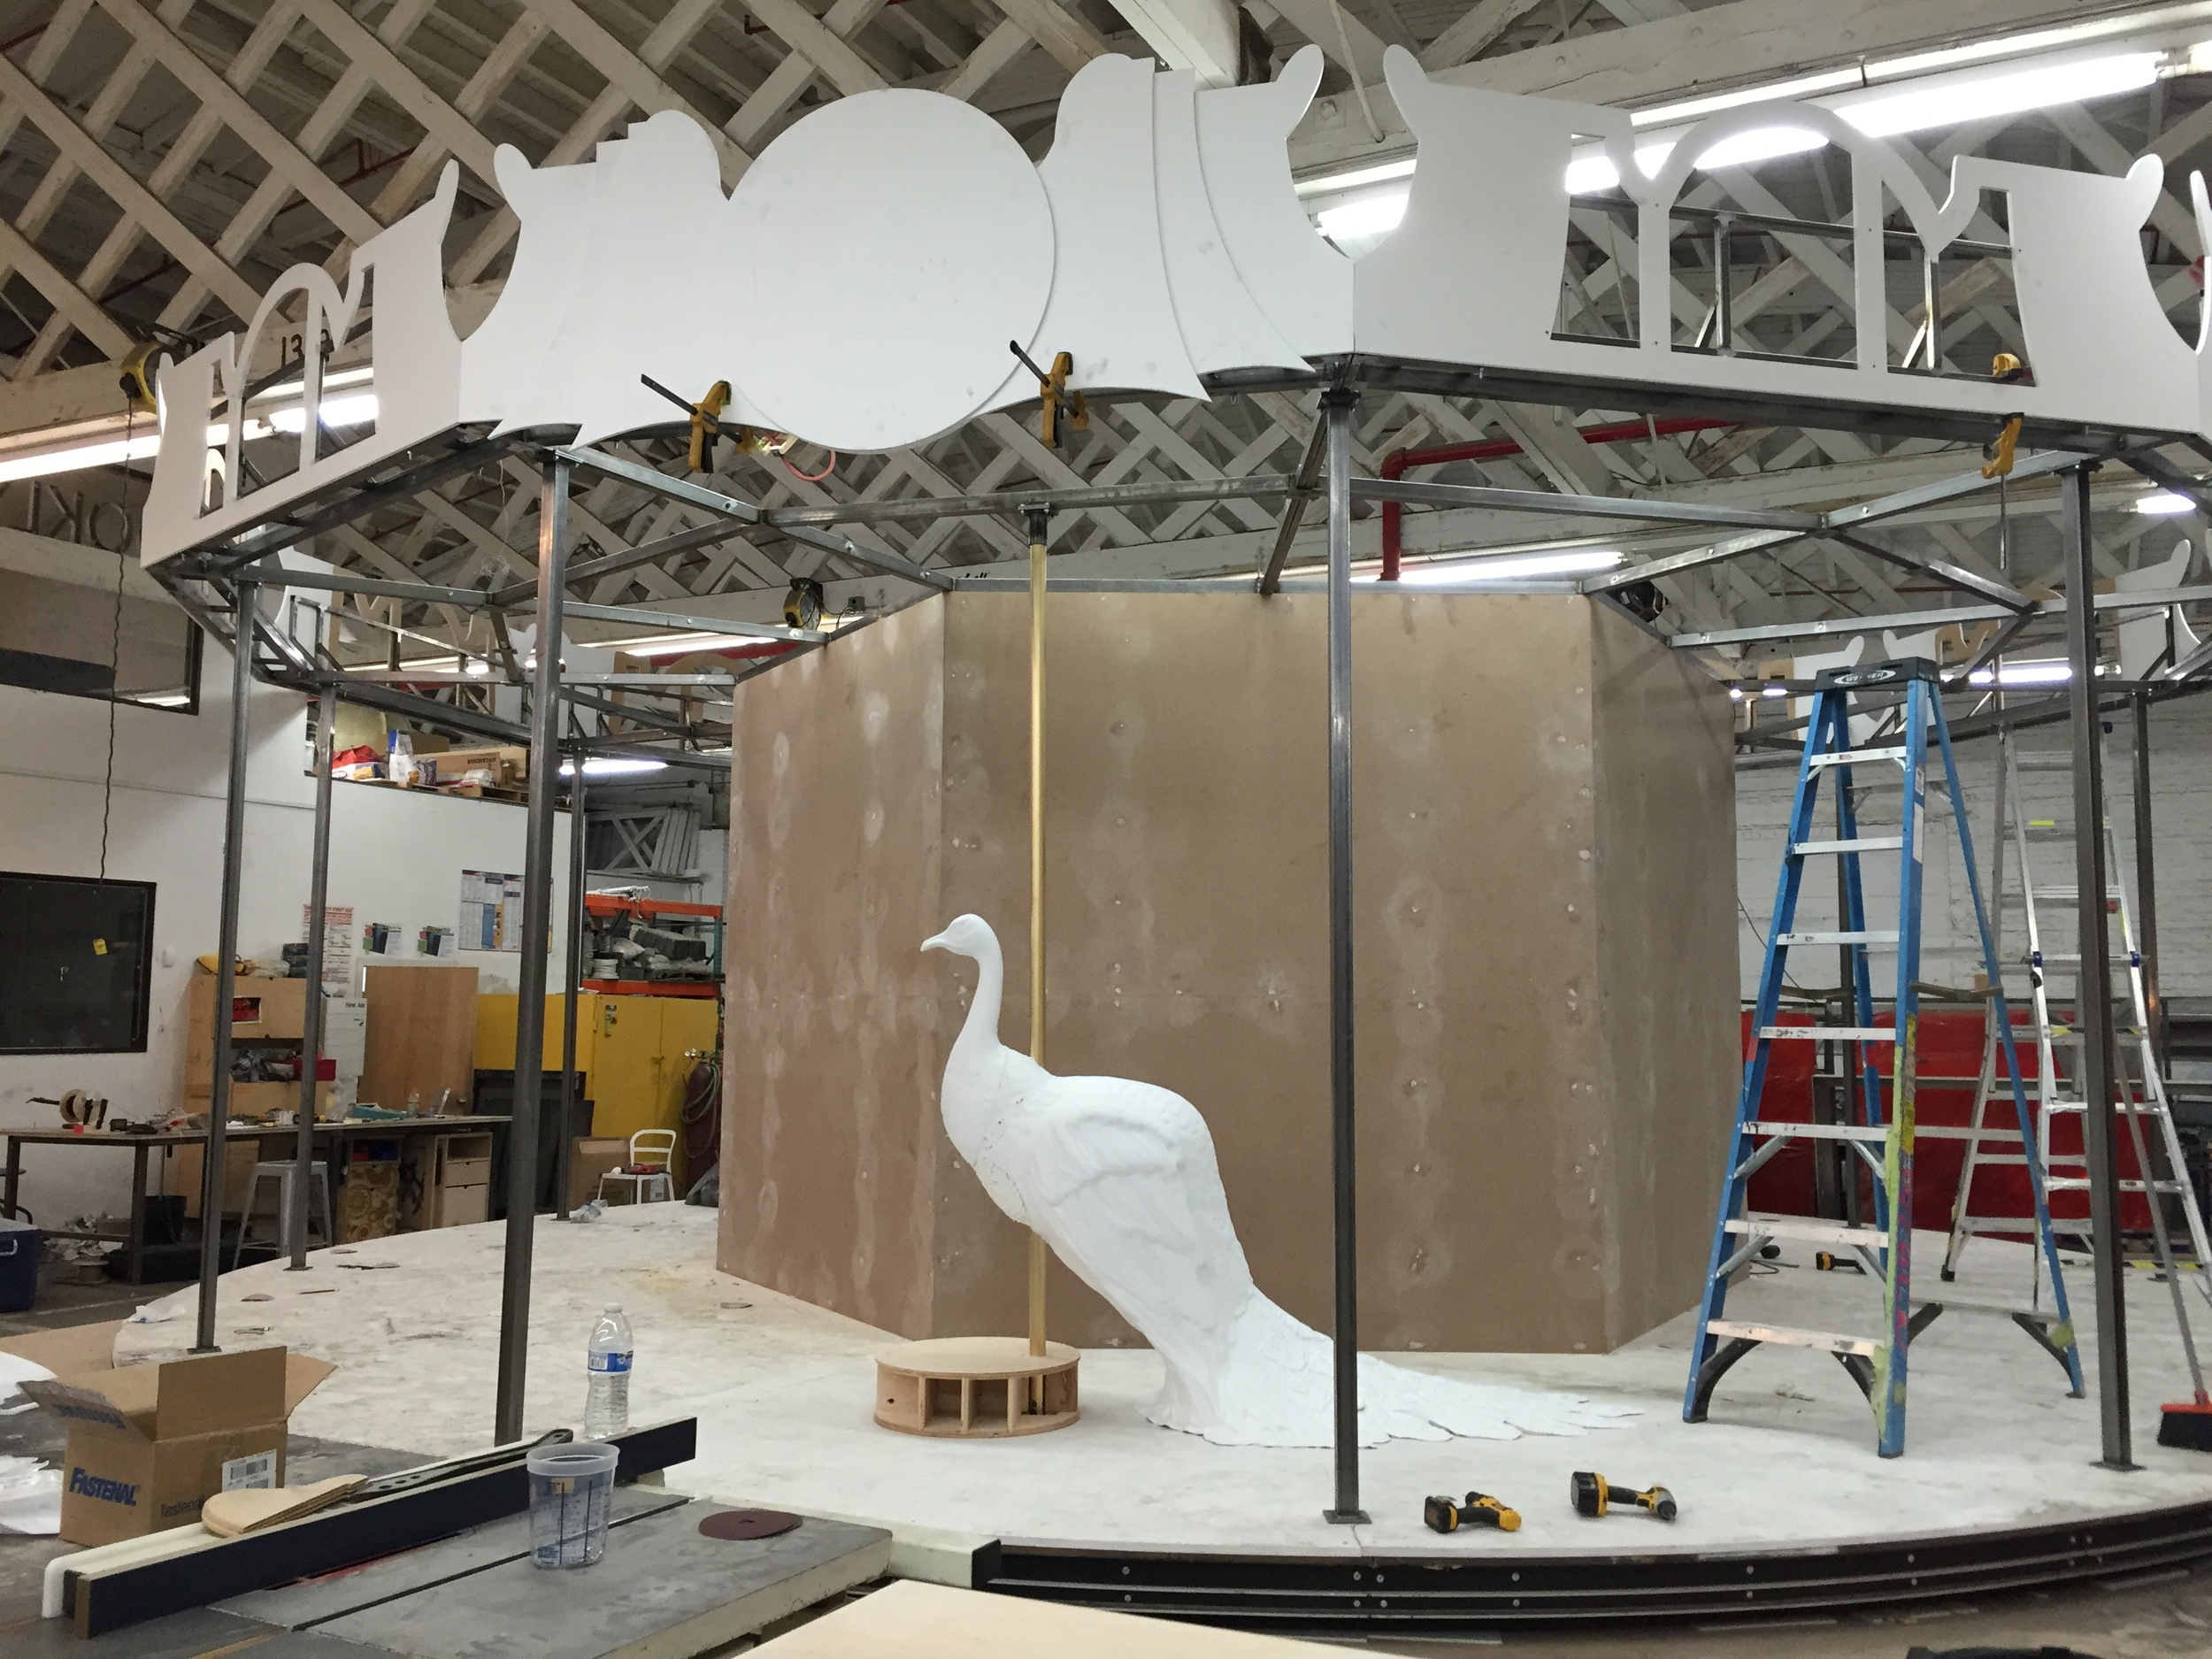 Target, in Vogue NYFW Kickoff Event 2015: Mounted Peacock (Vacuformed Plastic, Expanding Foam, Wood, Steel)